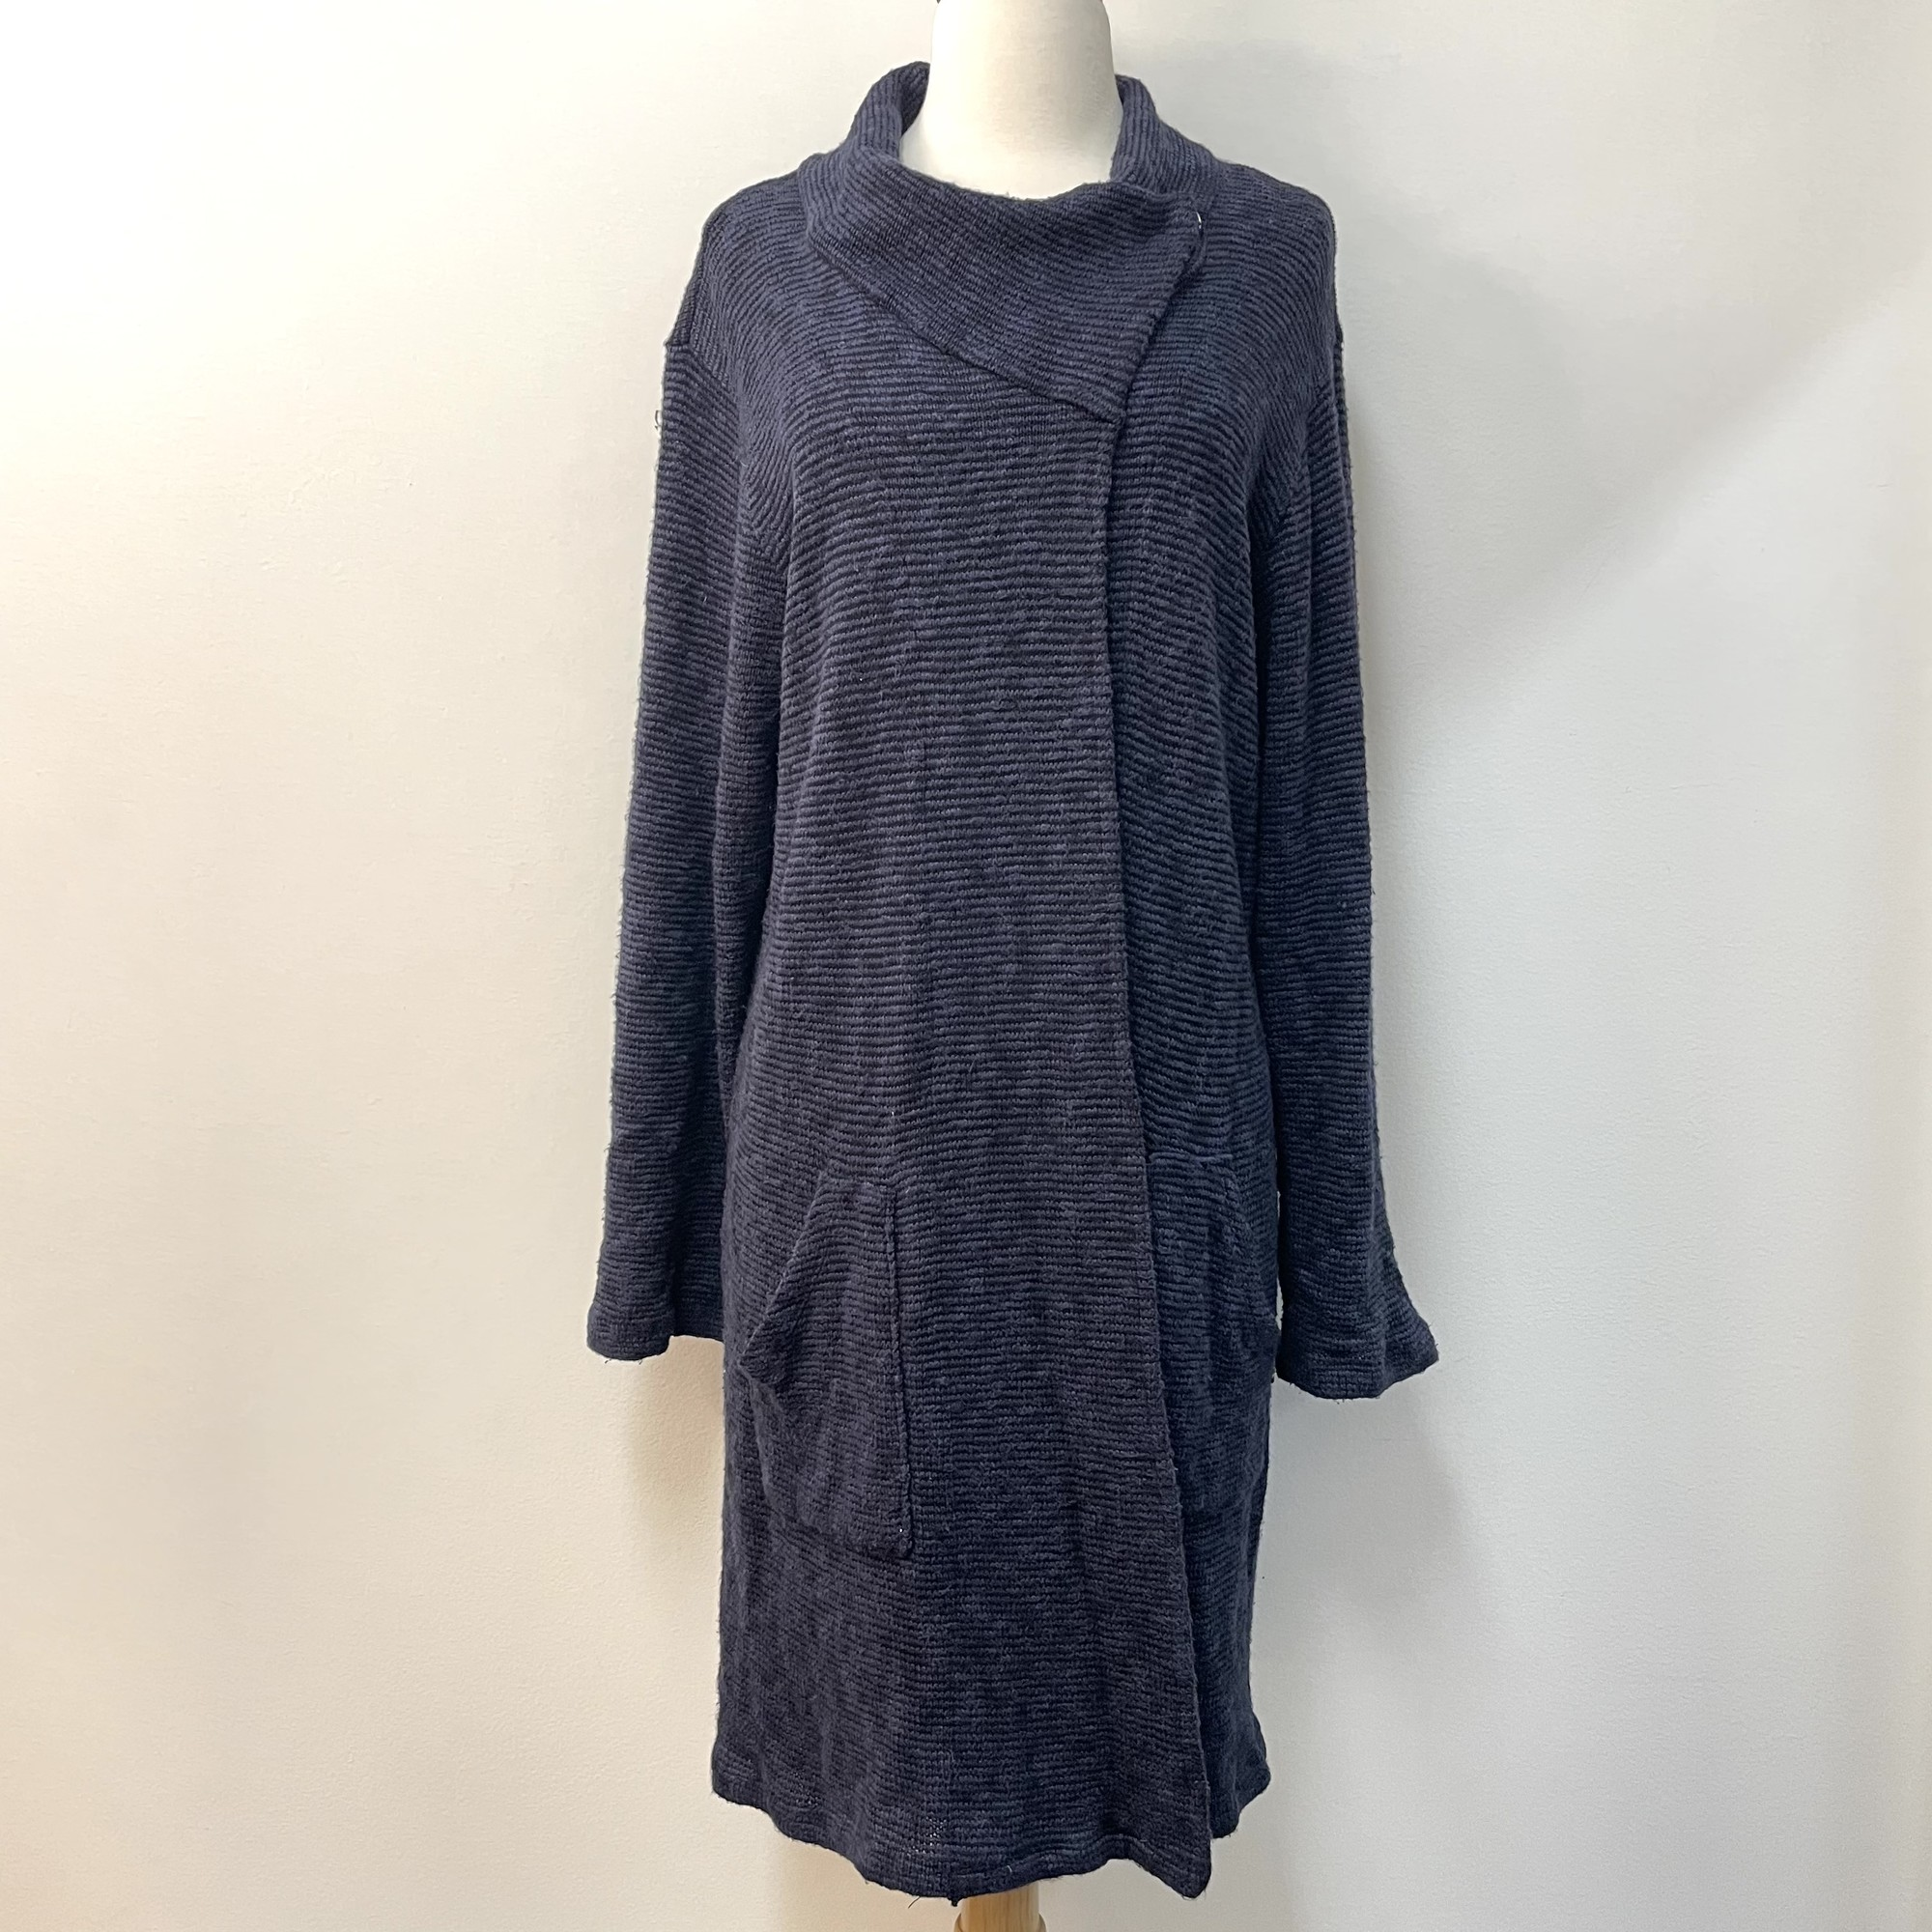 Blue Canoe Cowl Snap Cardigan<br /> With Pockets!<br /> Navy & Black<br /> Size: Large